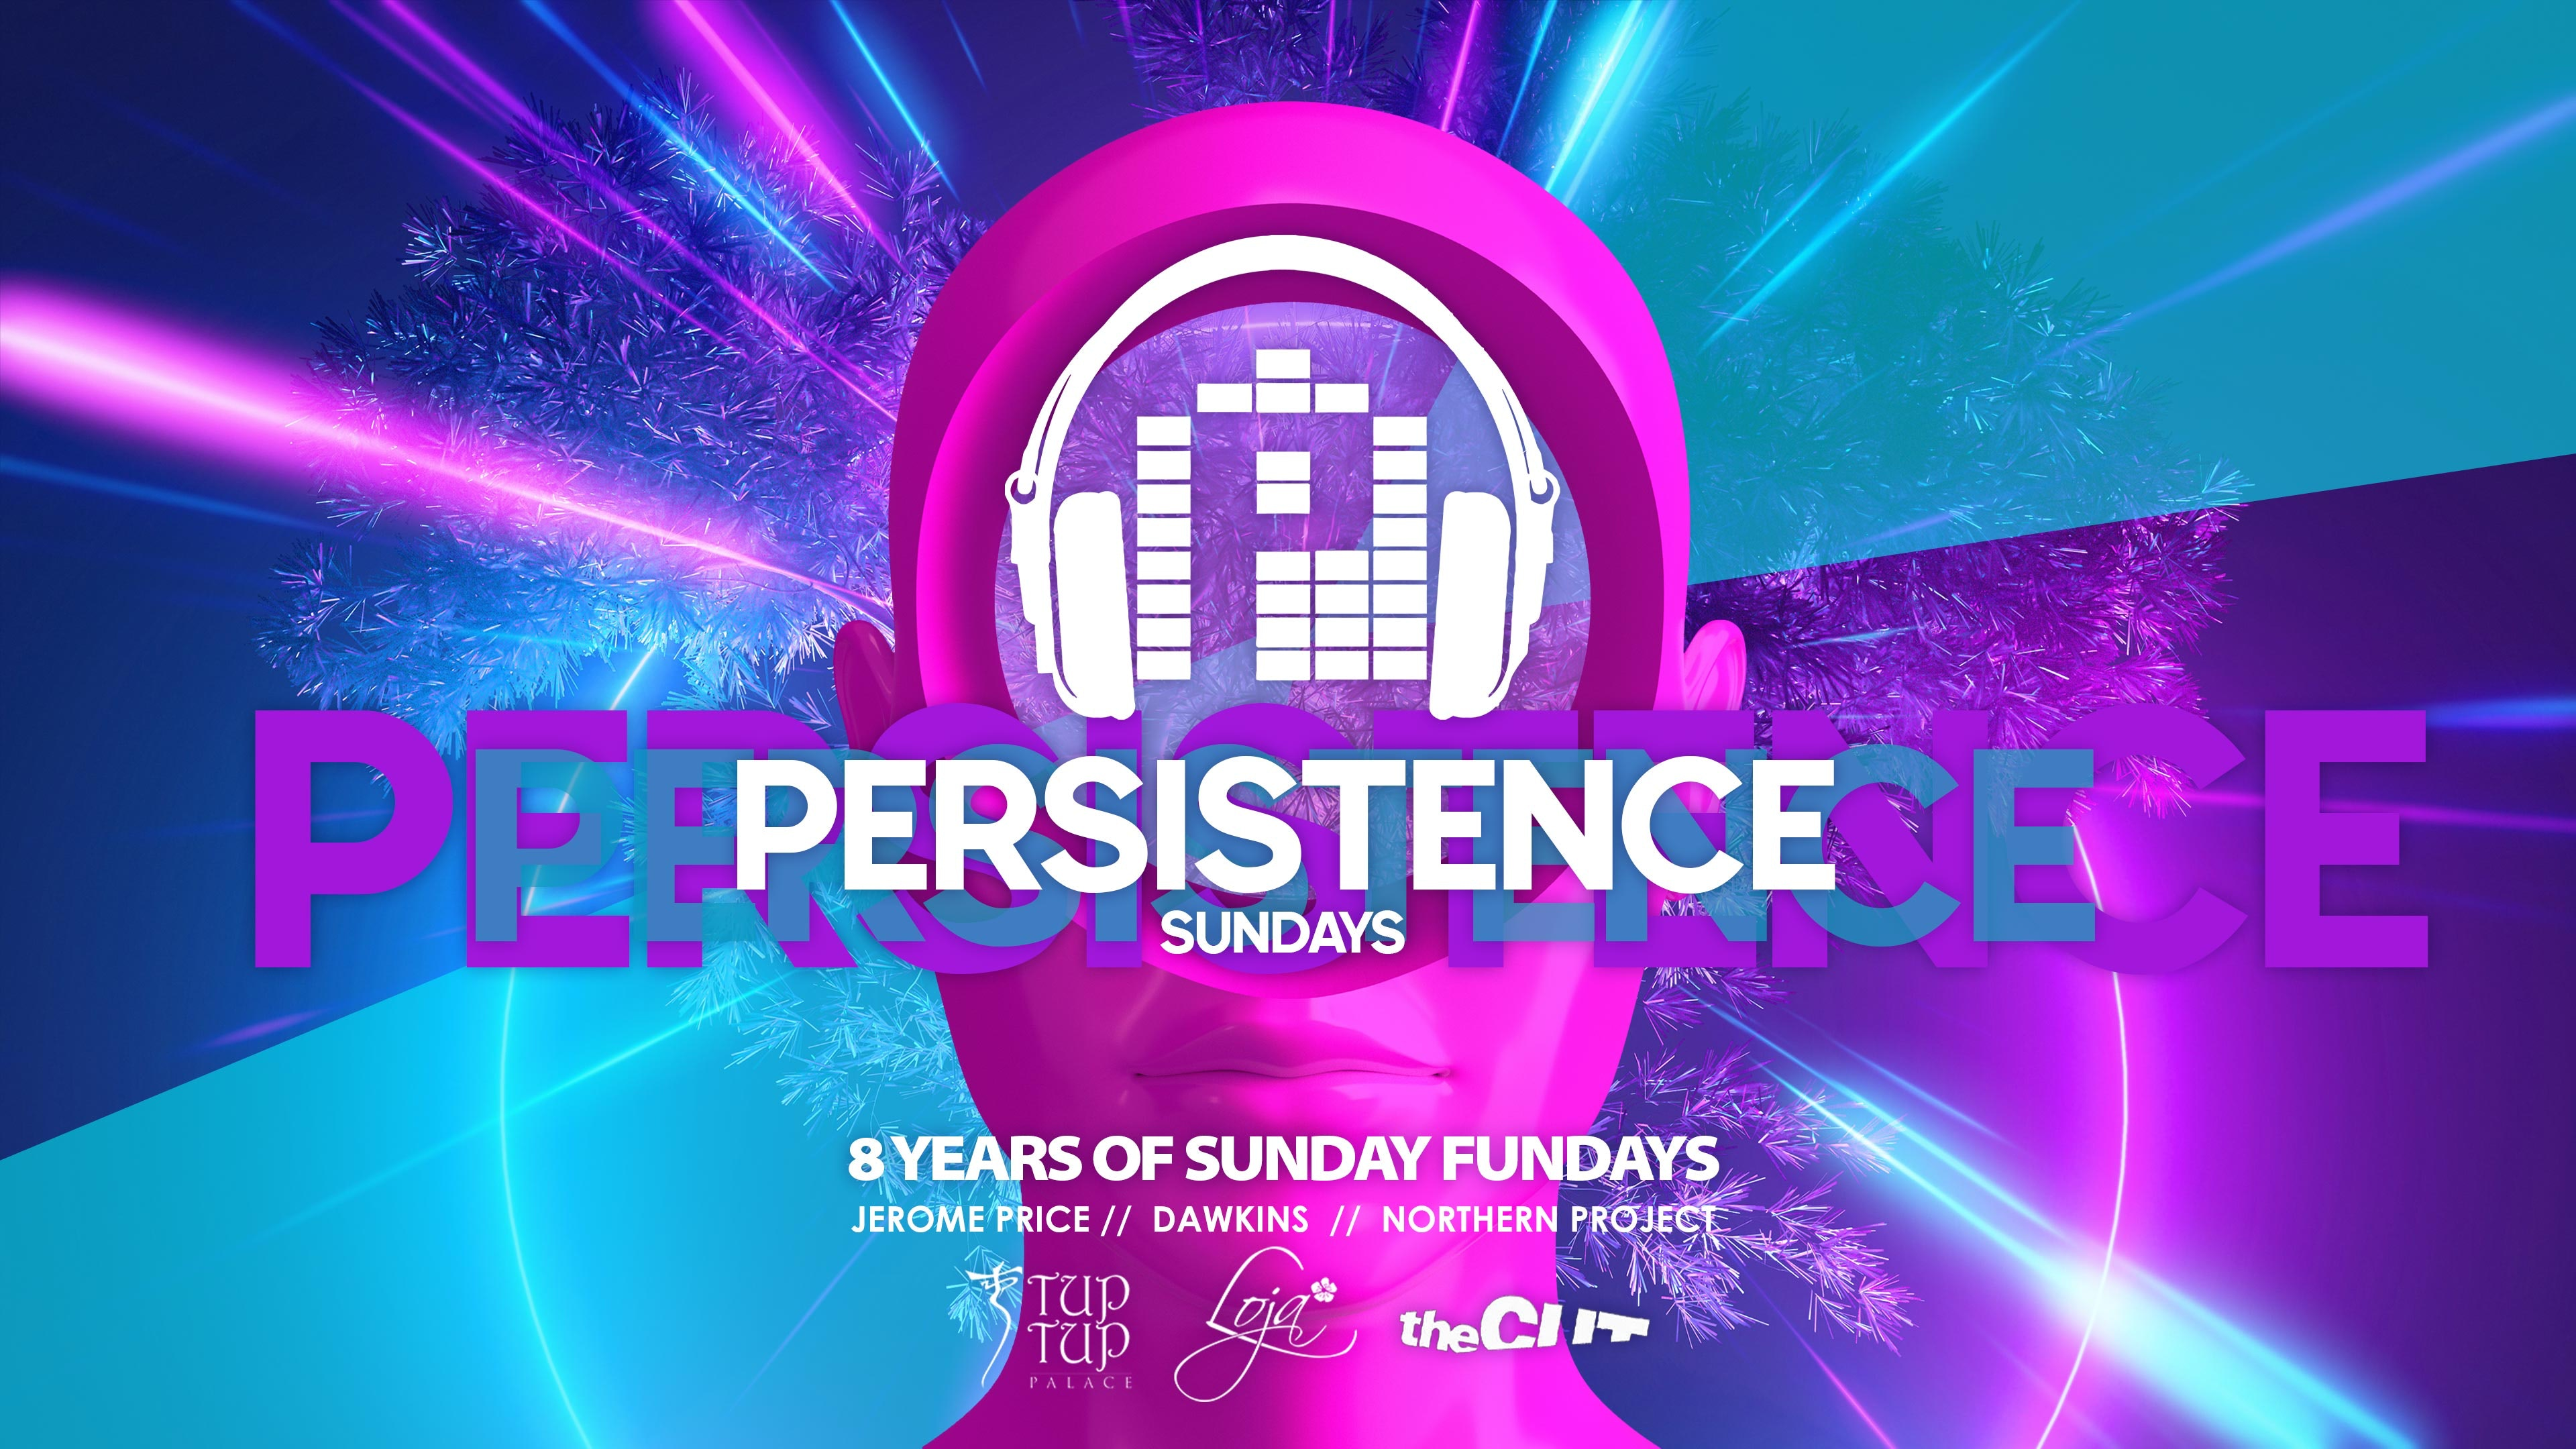 PERSISTENCE   TUP TUP PALACE, THE CUT & LOJA   15th AUGUST